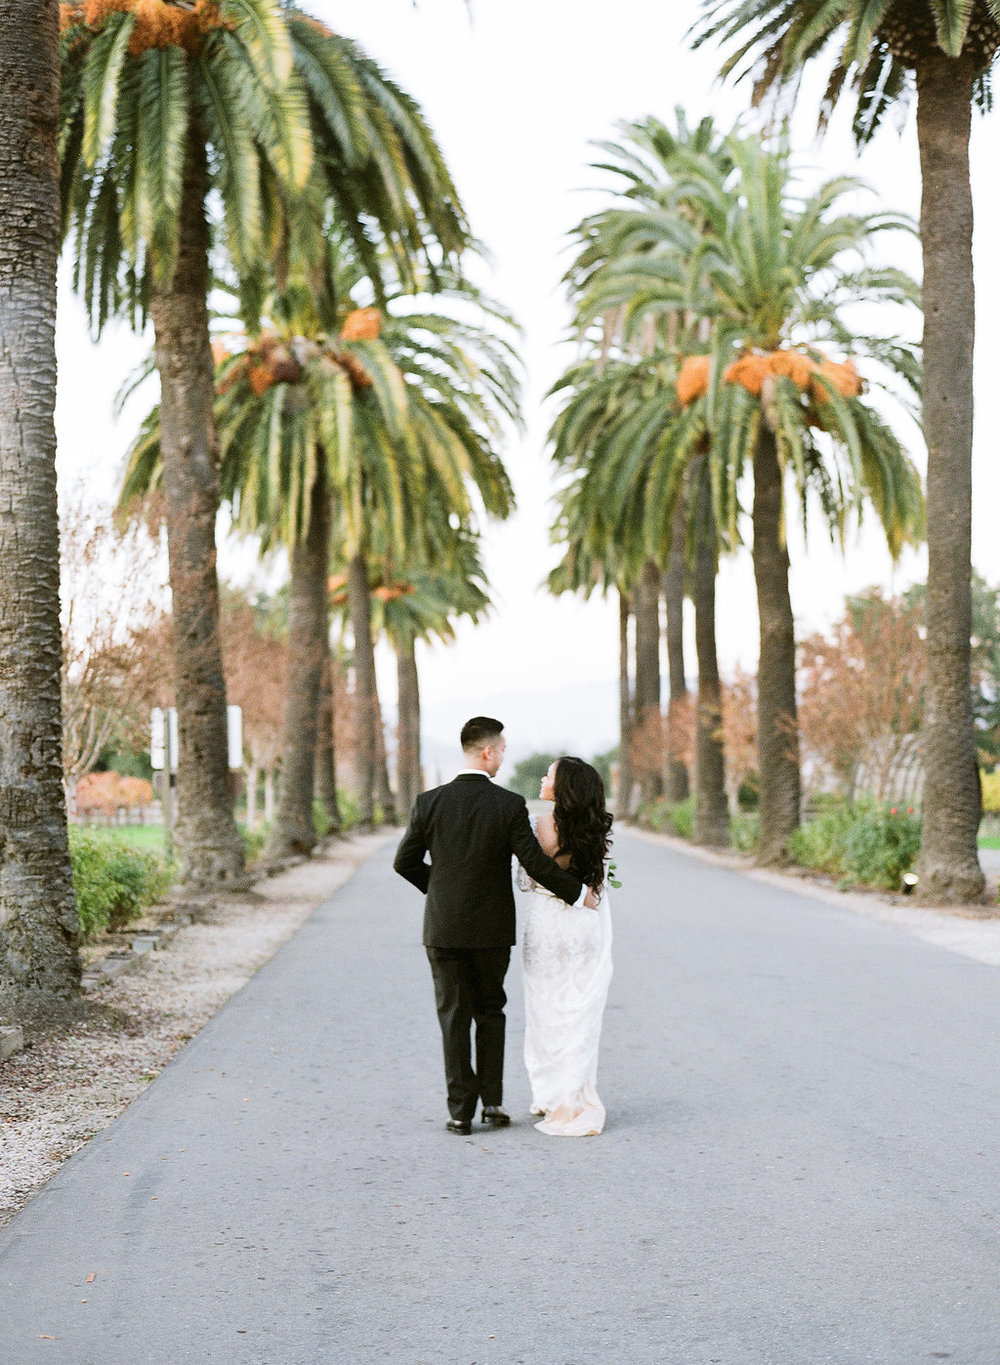 Palm Event Center Wedding Fine Art Film Photographer - Pleasanton, Livermore, Napa